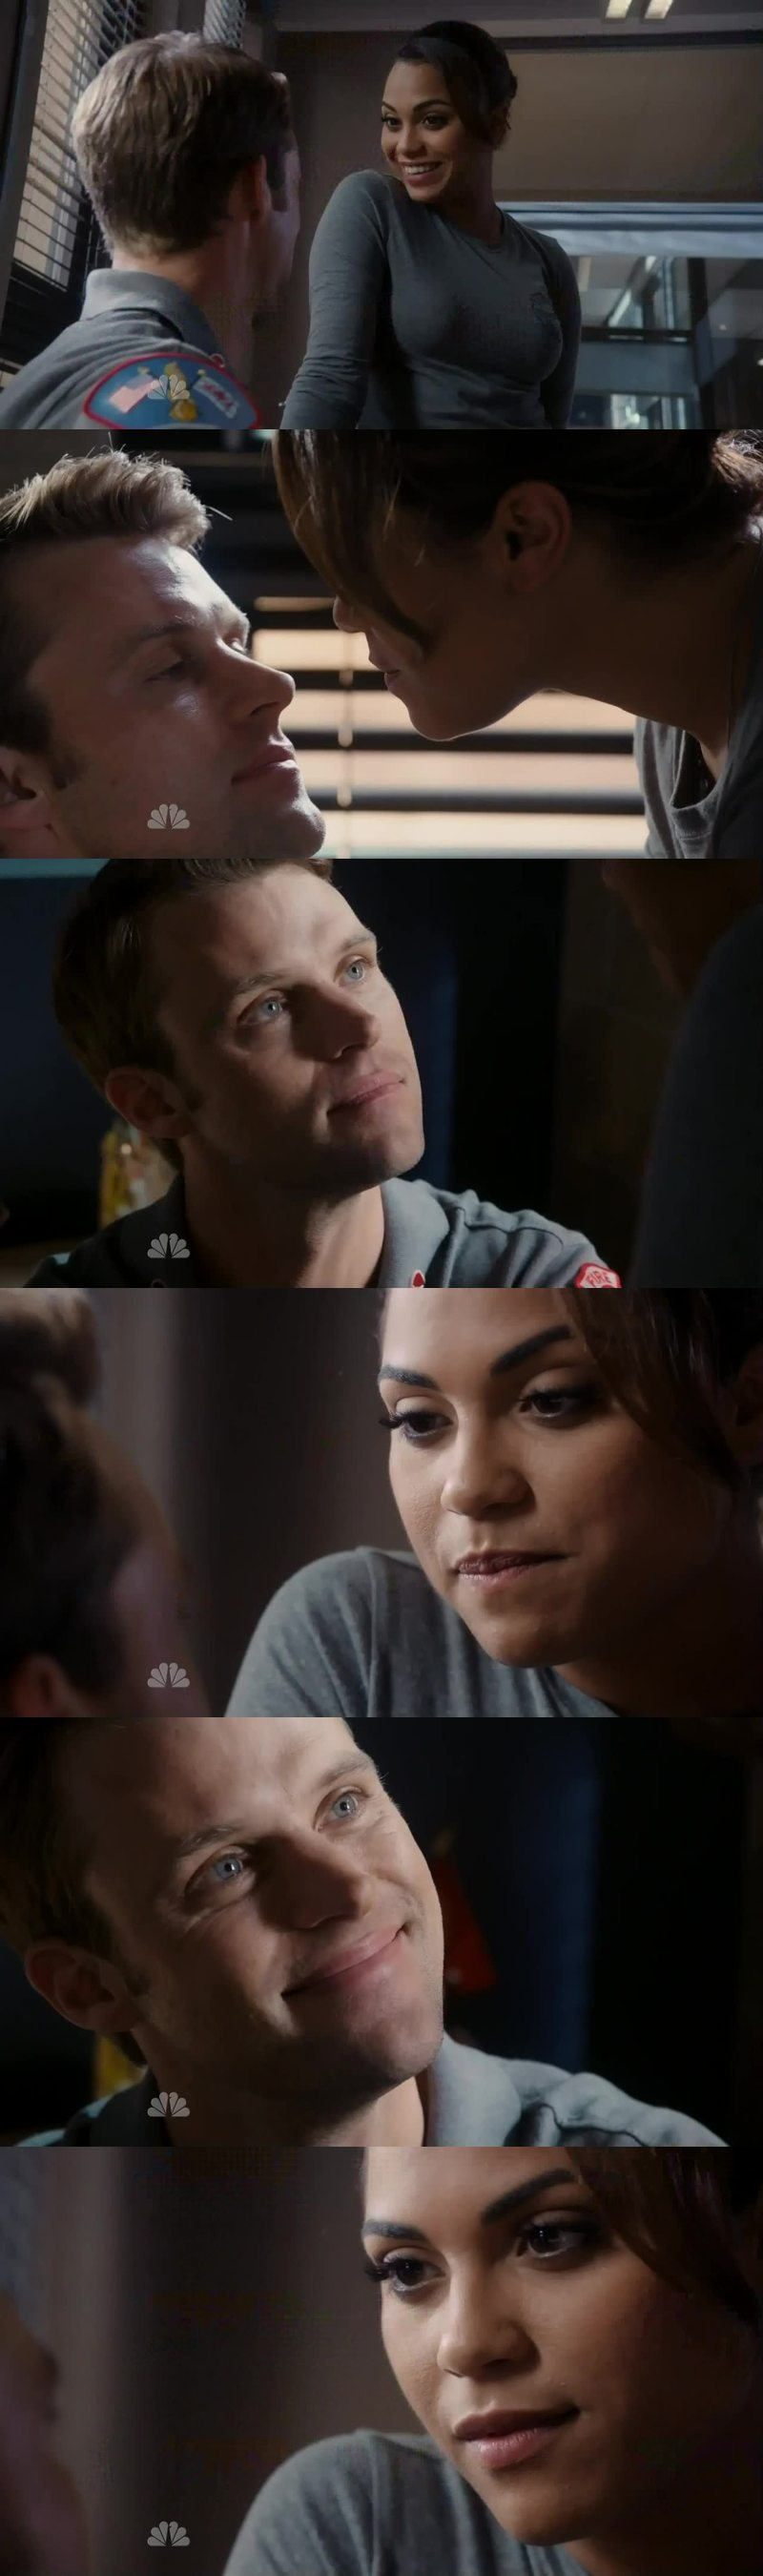 This show is more than awesome!! This couple is more than amazing! This season is more that fantastic! #Dawsey #ChicagoFrieIsAwesome  Dawson and Casey are my OTP and I am so glad they decided to get back together, the show was not the same without the two of them as a couple! They are now and will always be my OTP! #OTPforlife